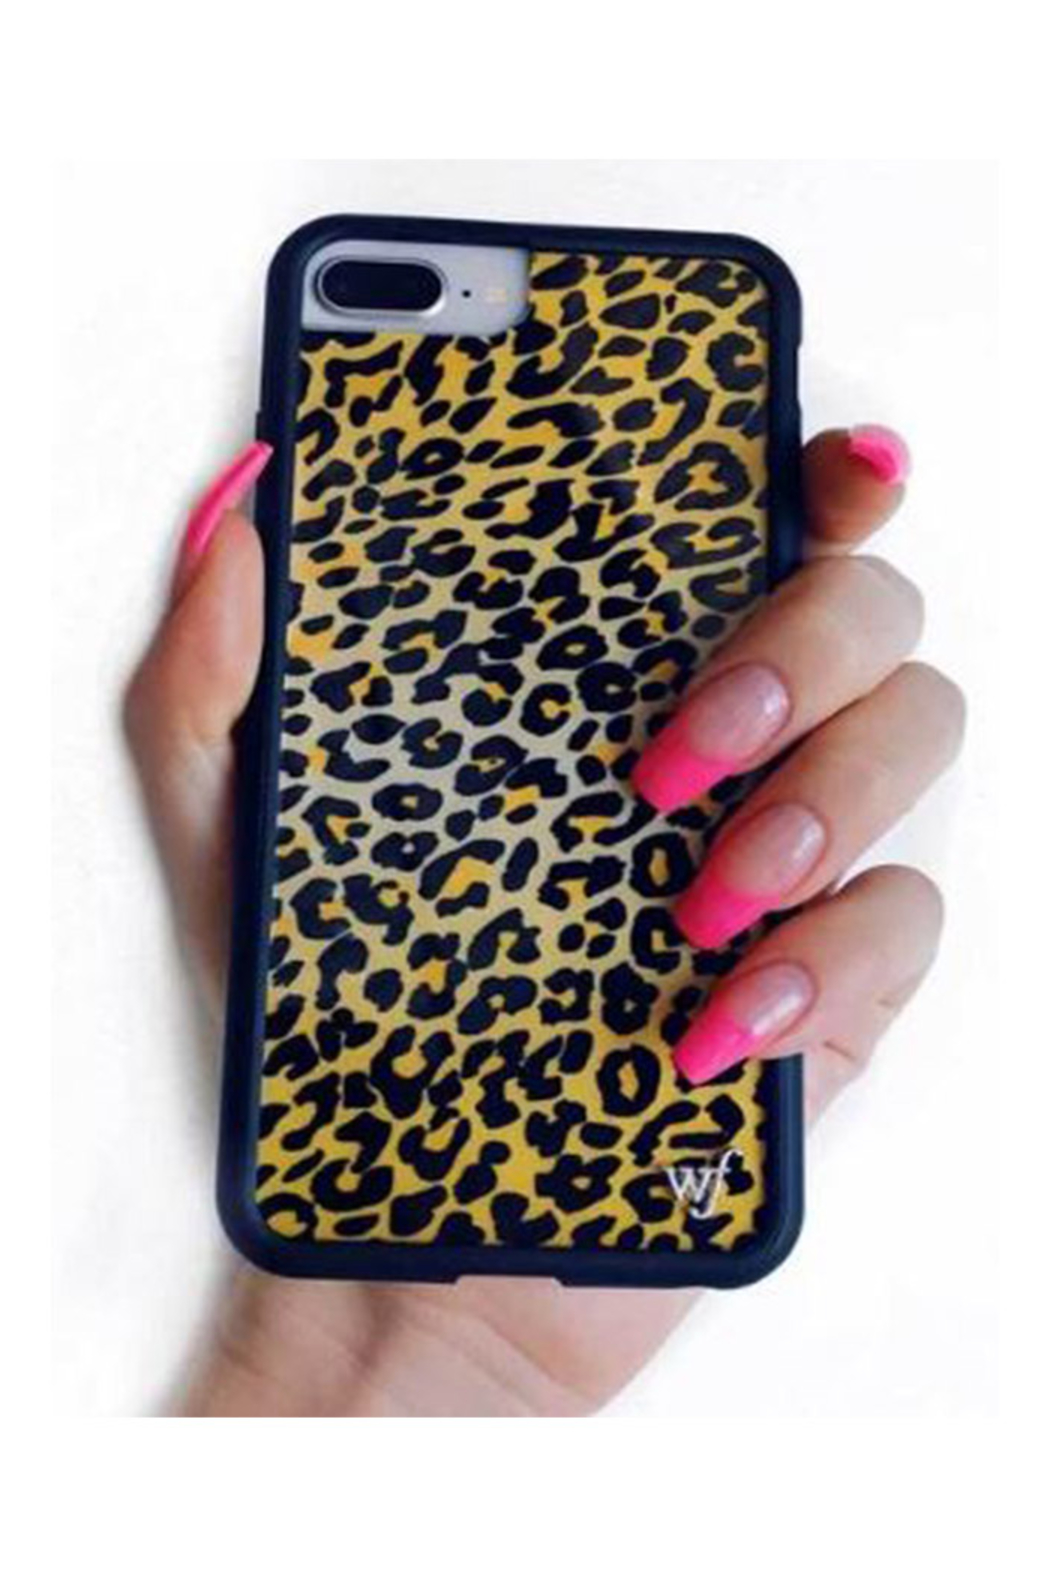 low priced 8c431 364e5 Wildflower Cases Leopard iPhone 6/7/8 Case from New York by Let's ...